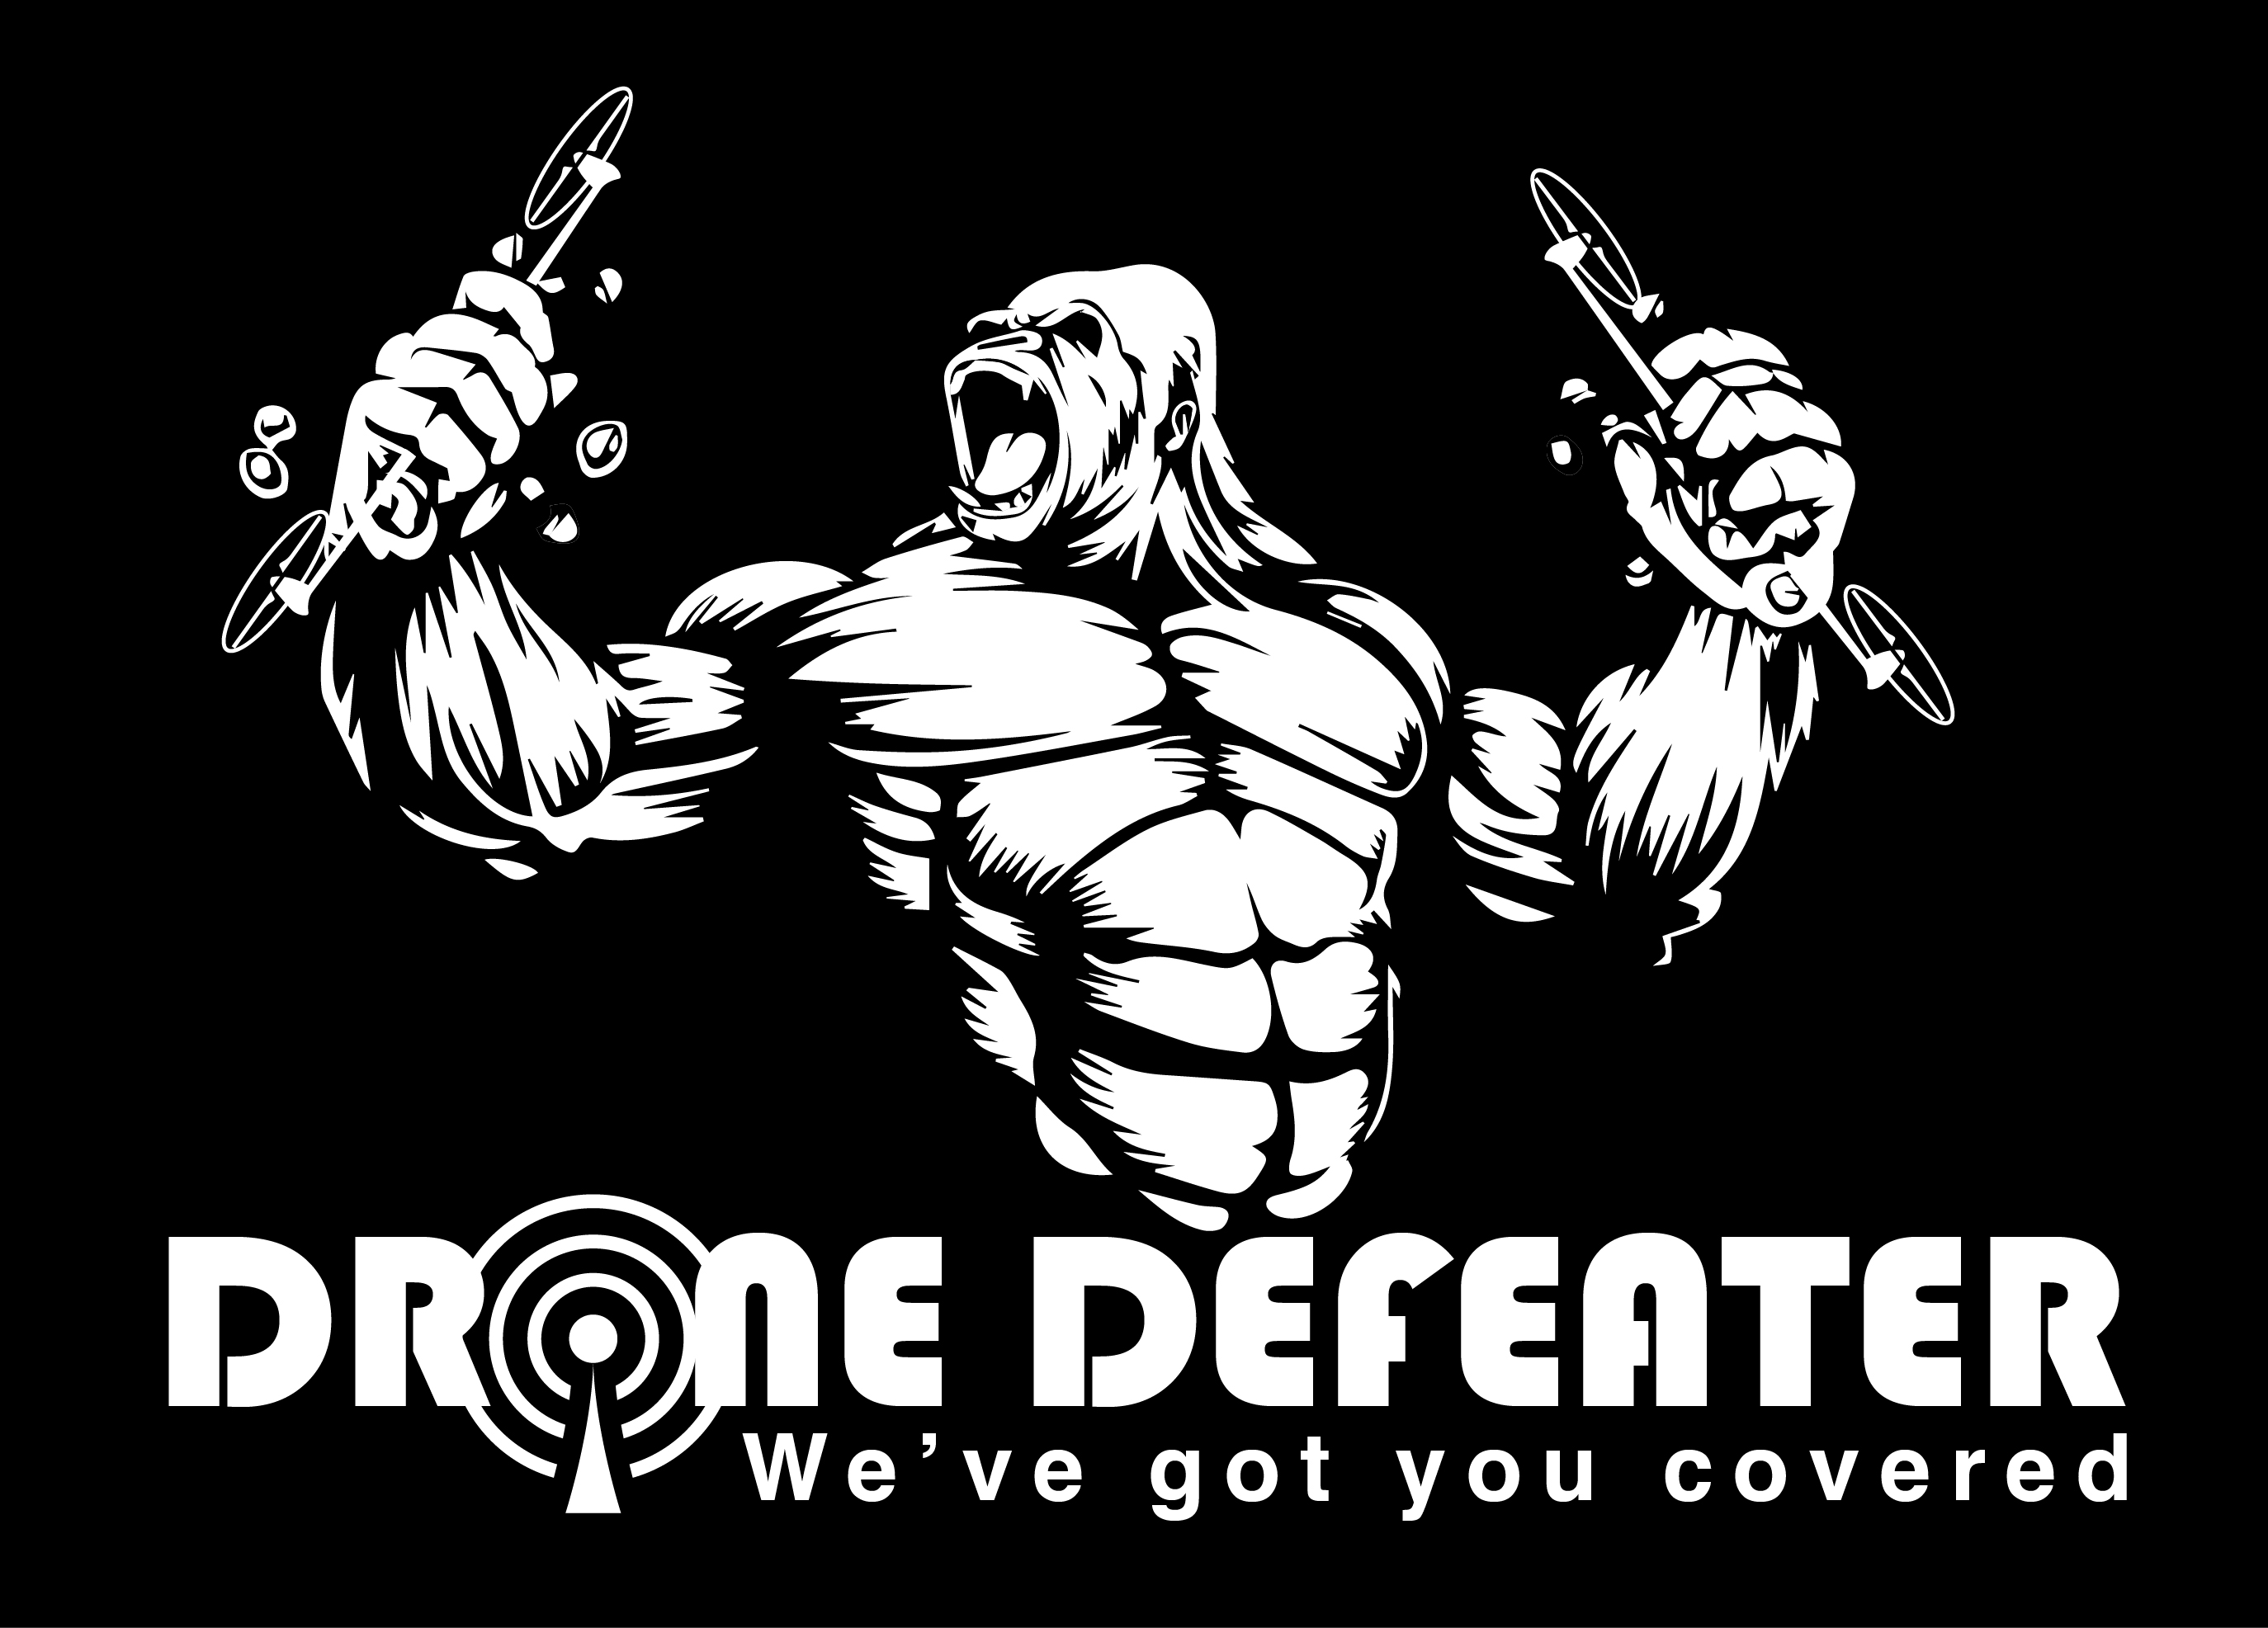 Logo Design by Rob King - Entry No. 70 in the Logo Design Contest Artistic Logo Design for Drone Defeater.